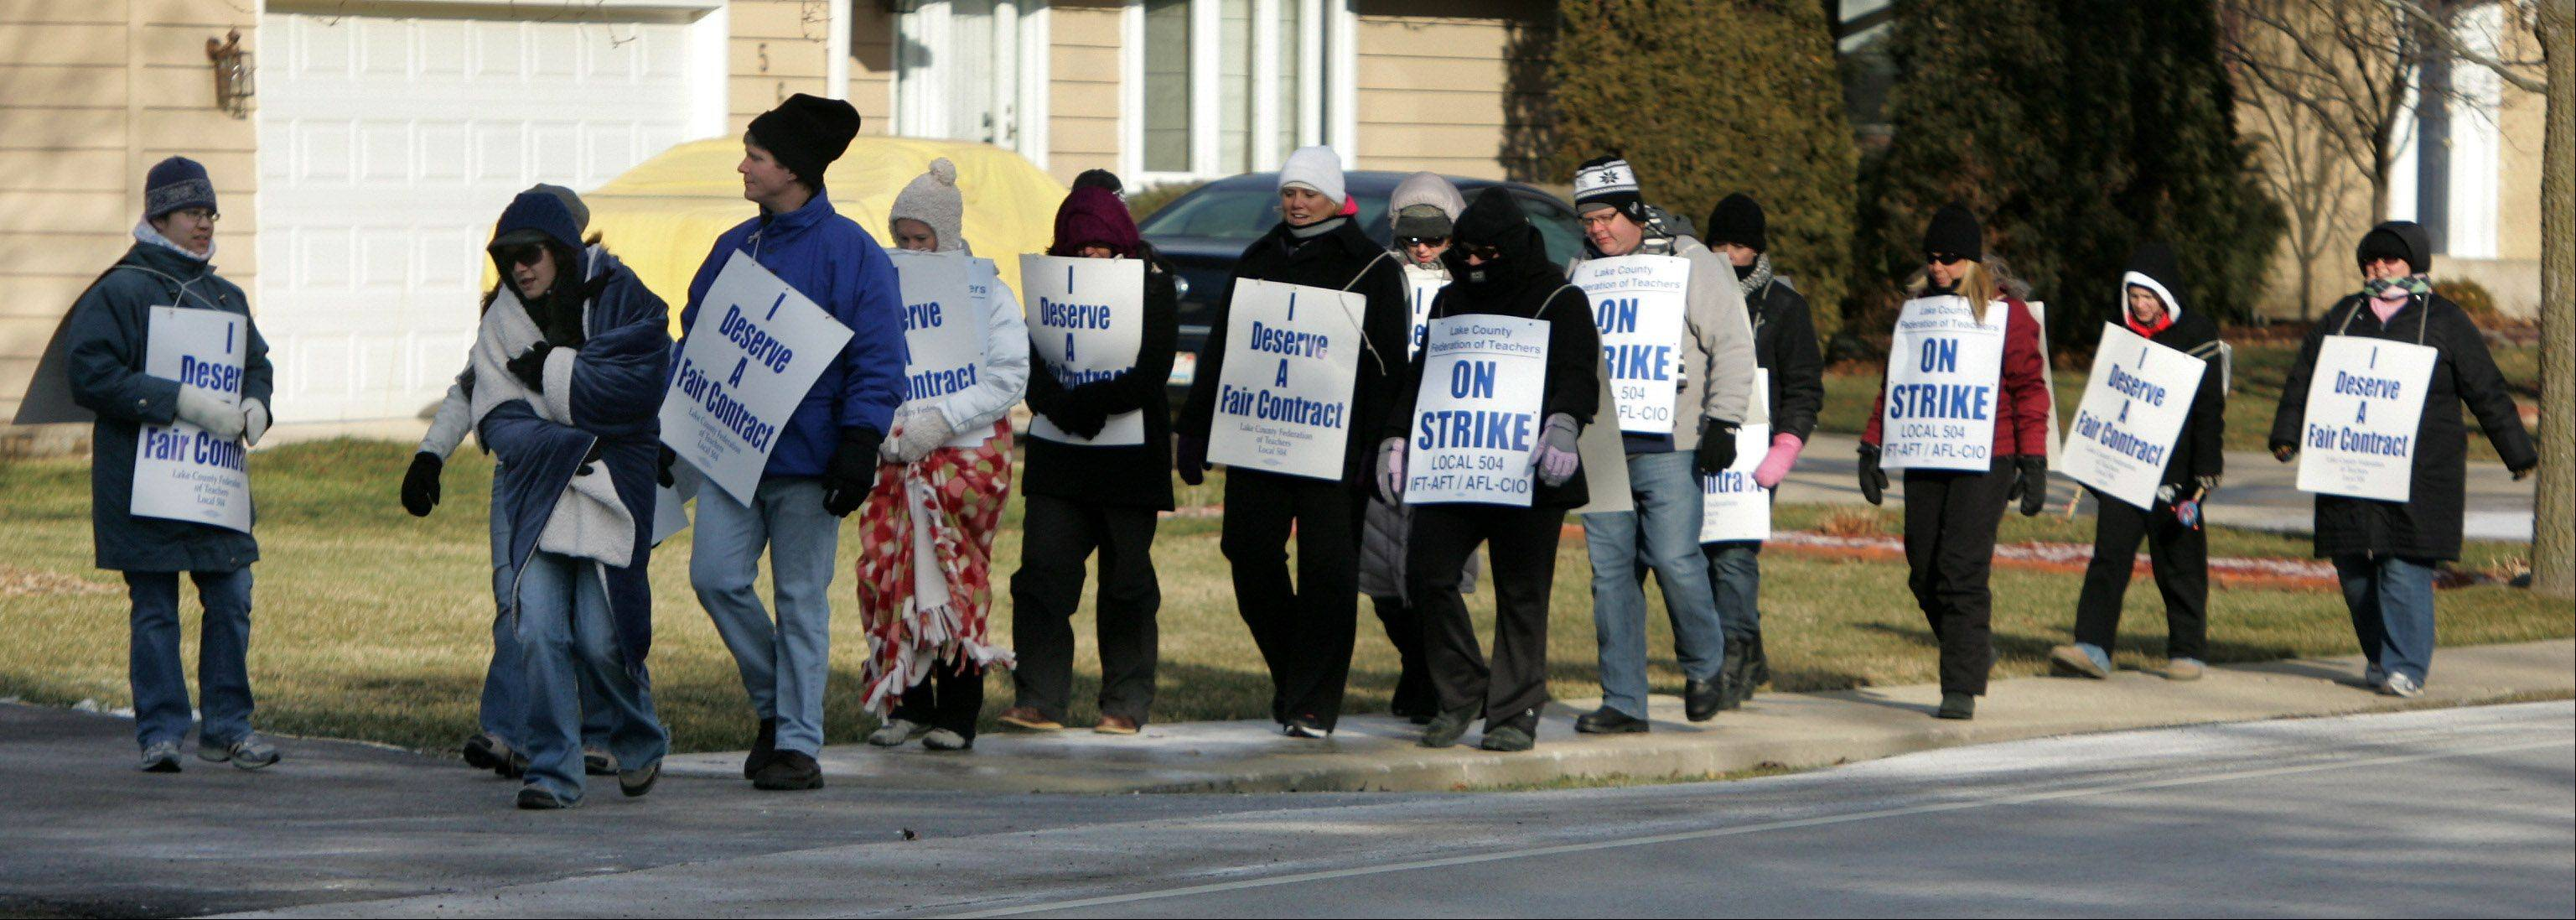 Teachers walk the picket line last week outside Grayslake Middle School. The union strike lasted three days in Grayslake Elementary District 46.